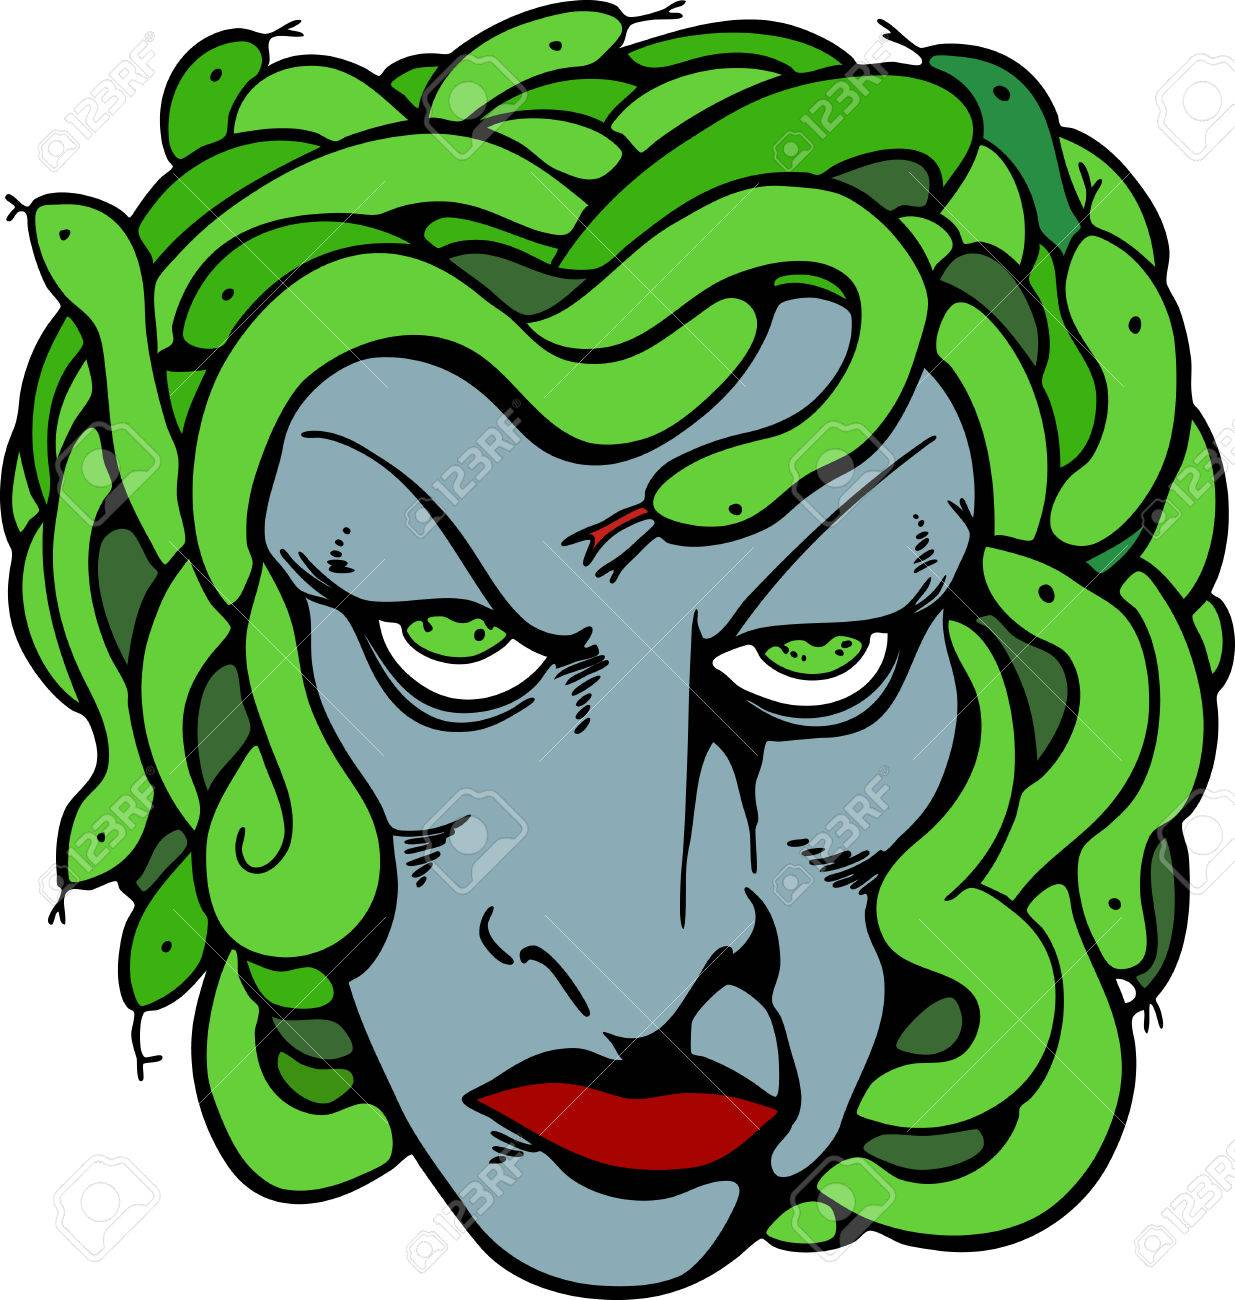 1235x1300 Mythical Medusa Head Drawing. Royalty Free Cliparts, Vectors,